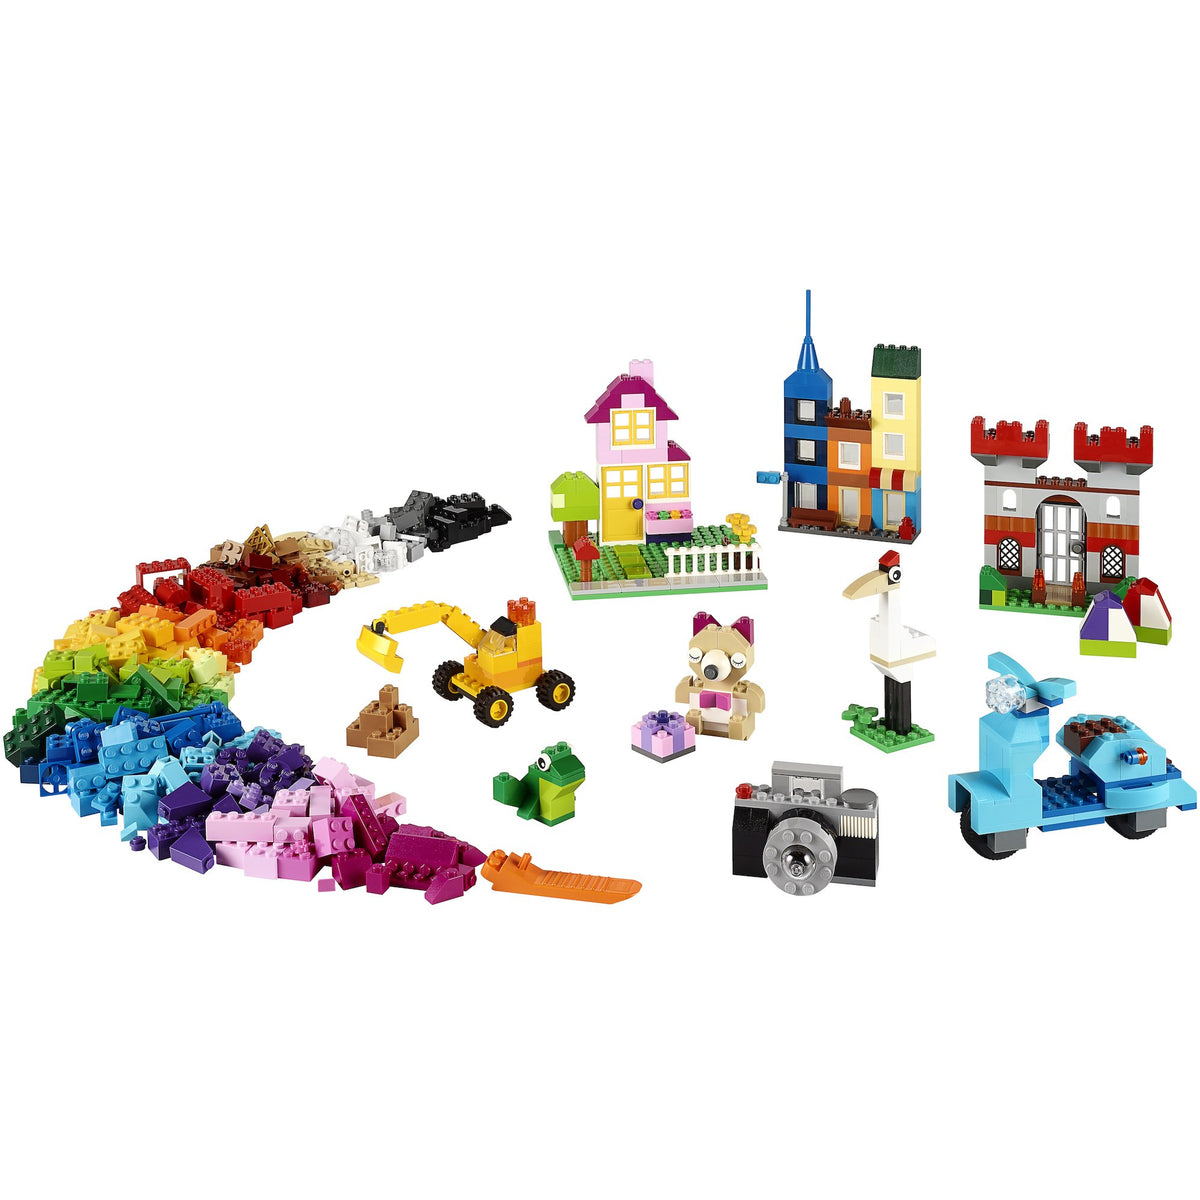 LEGO Classic Large Creative Brick Box Pieces